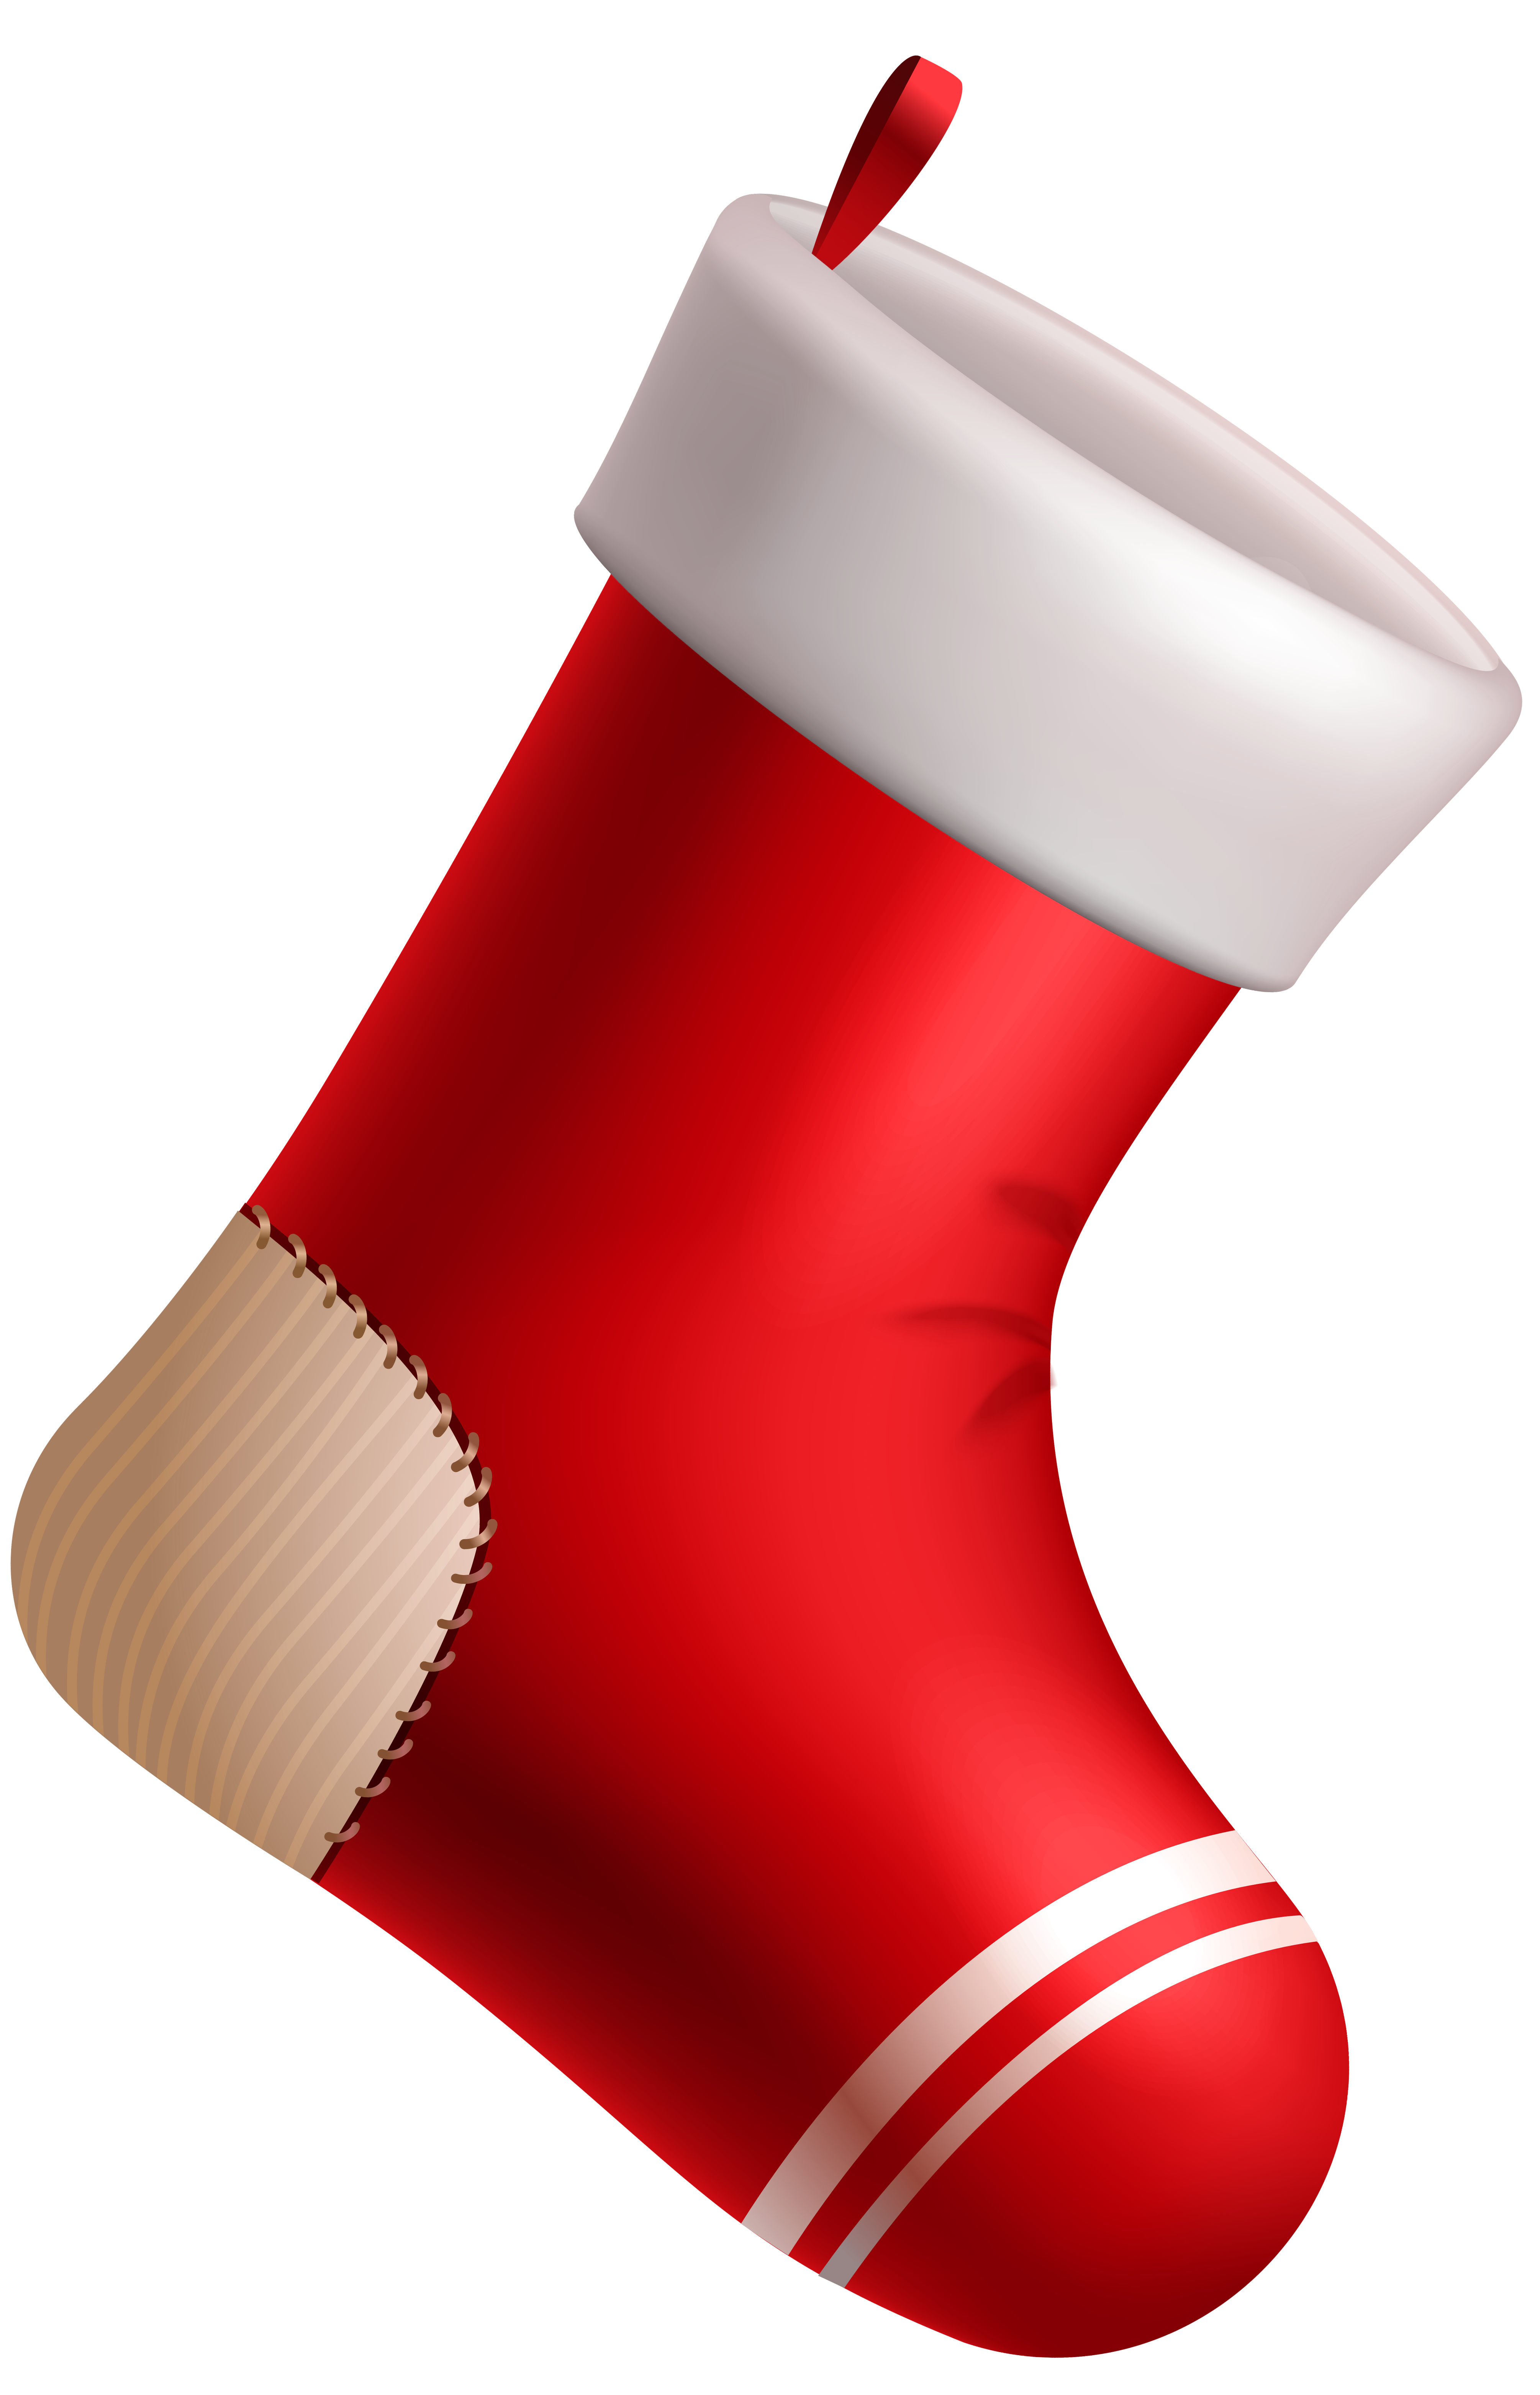 Sock clipart red. Christmas stocking png image